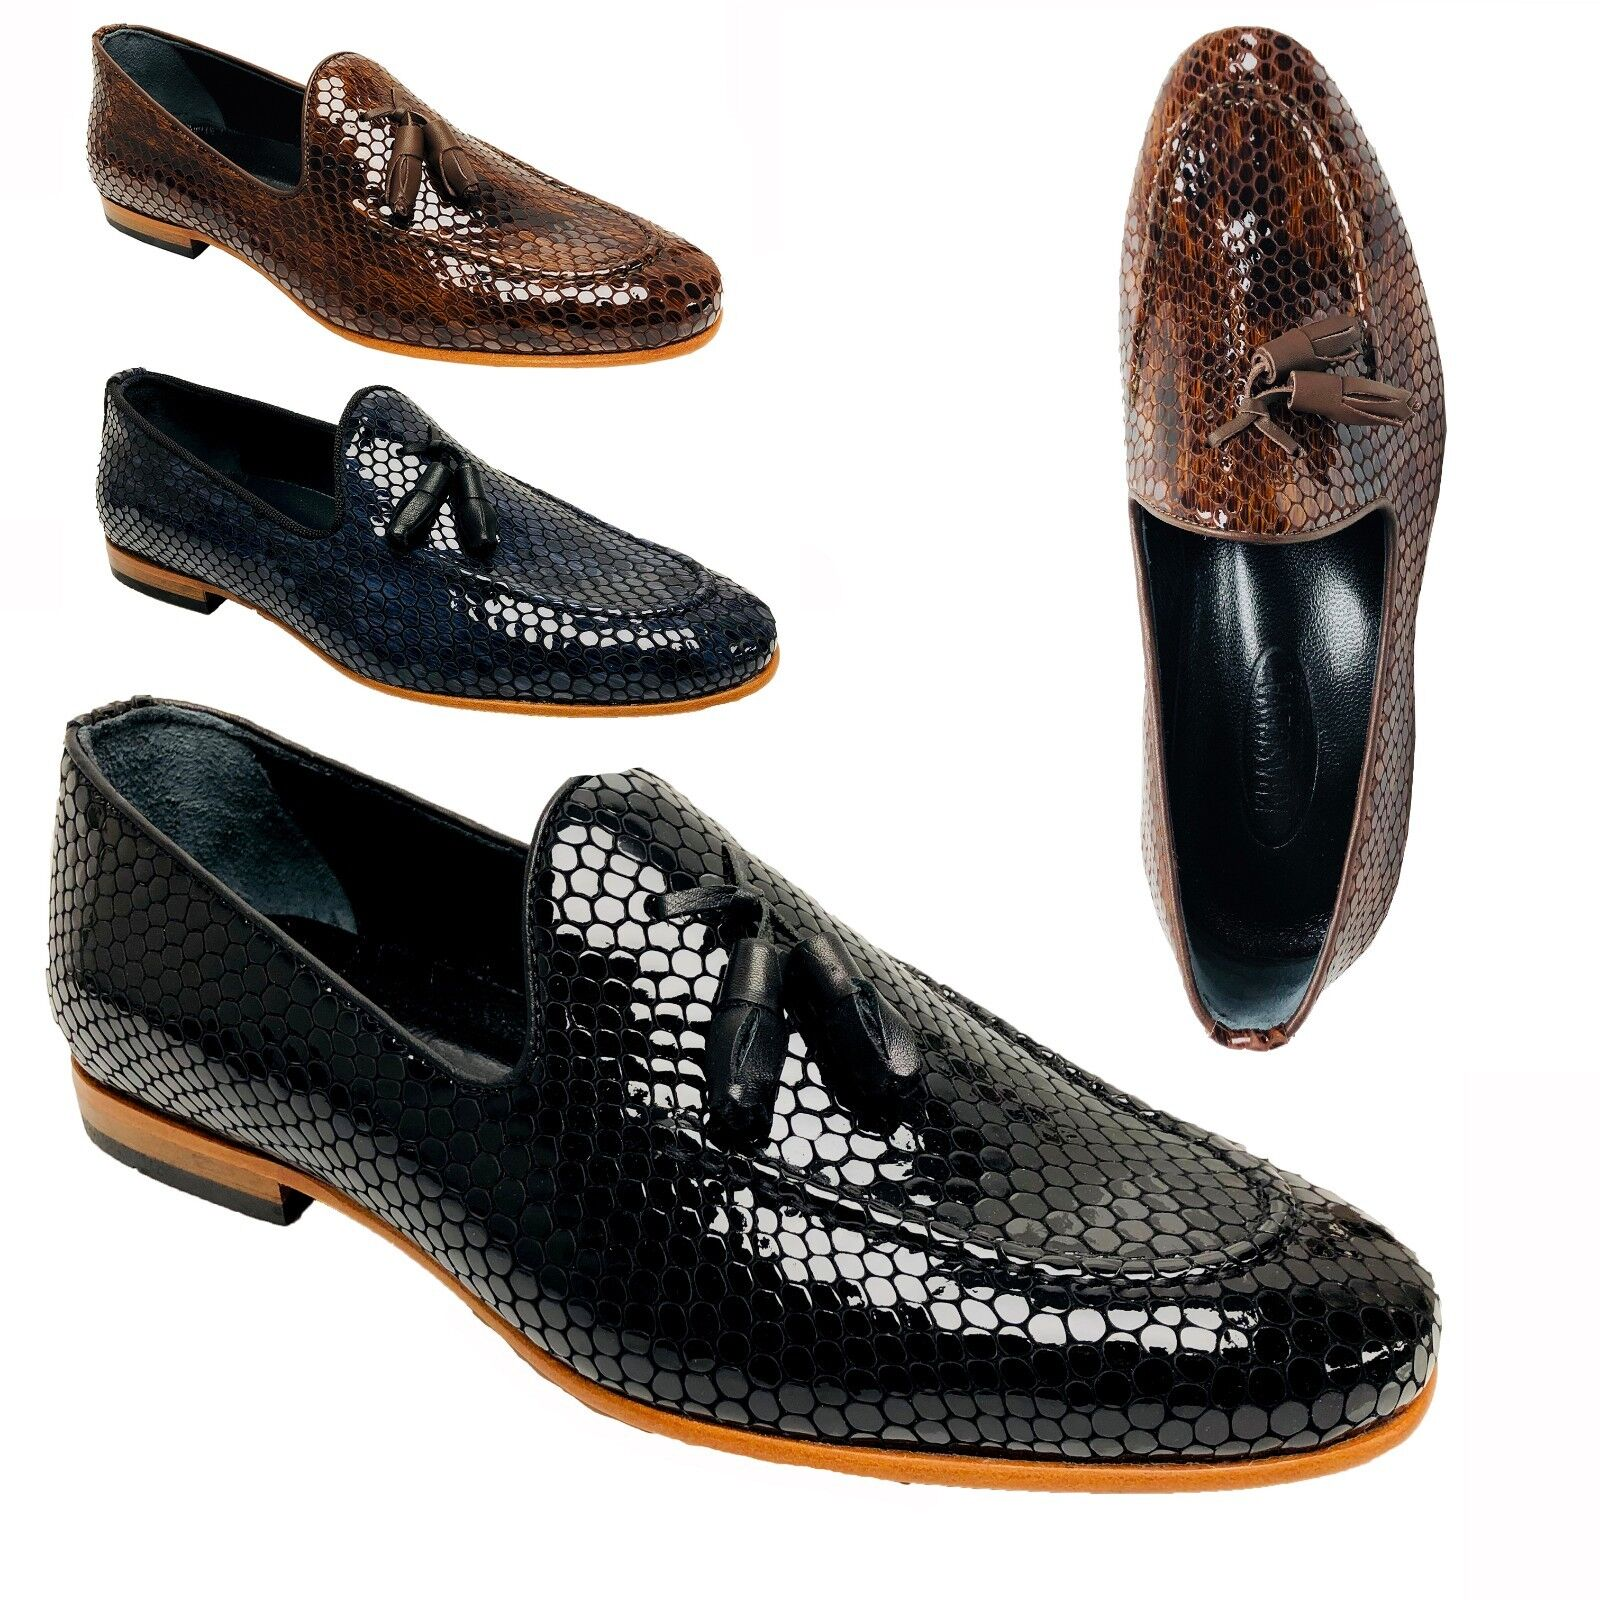 Mens Italian Real Leather Loafers Smart Snake print shoes Slip On Tassel Size